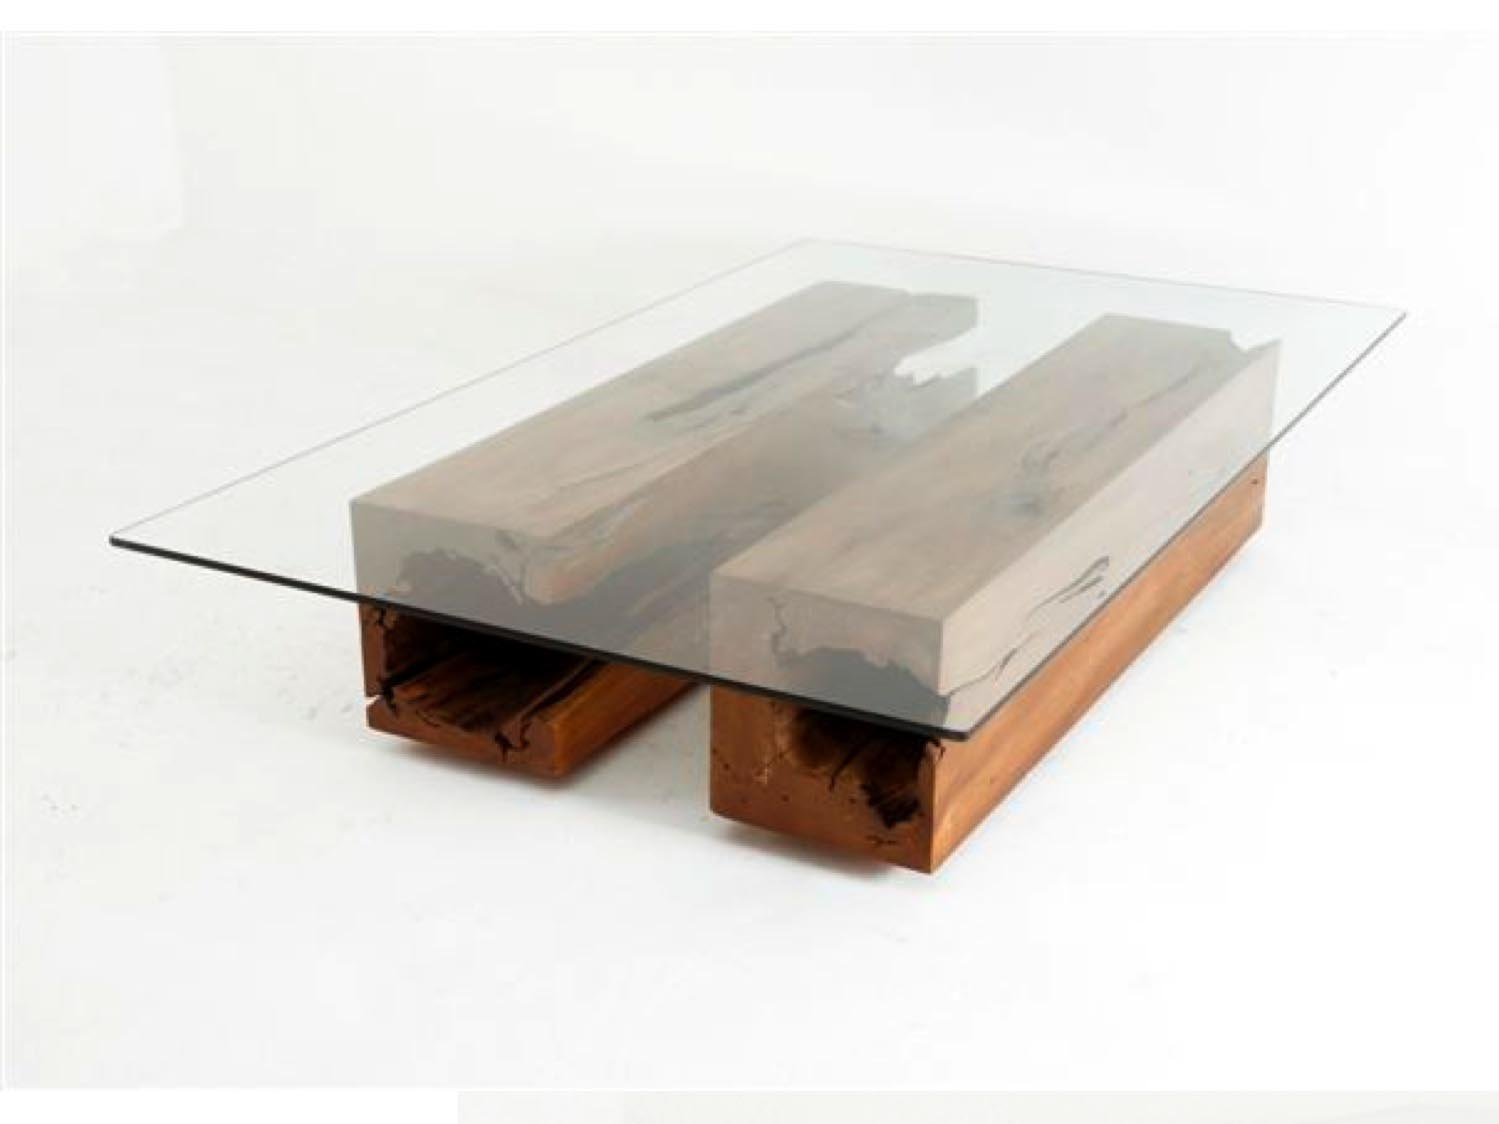 Unique Coffee Table Is Victory Over The Boring Interior